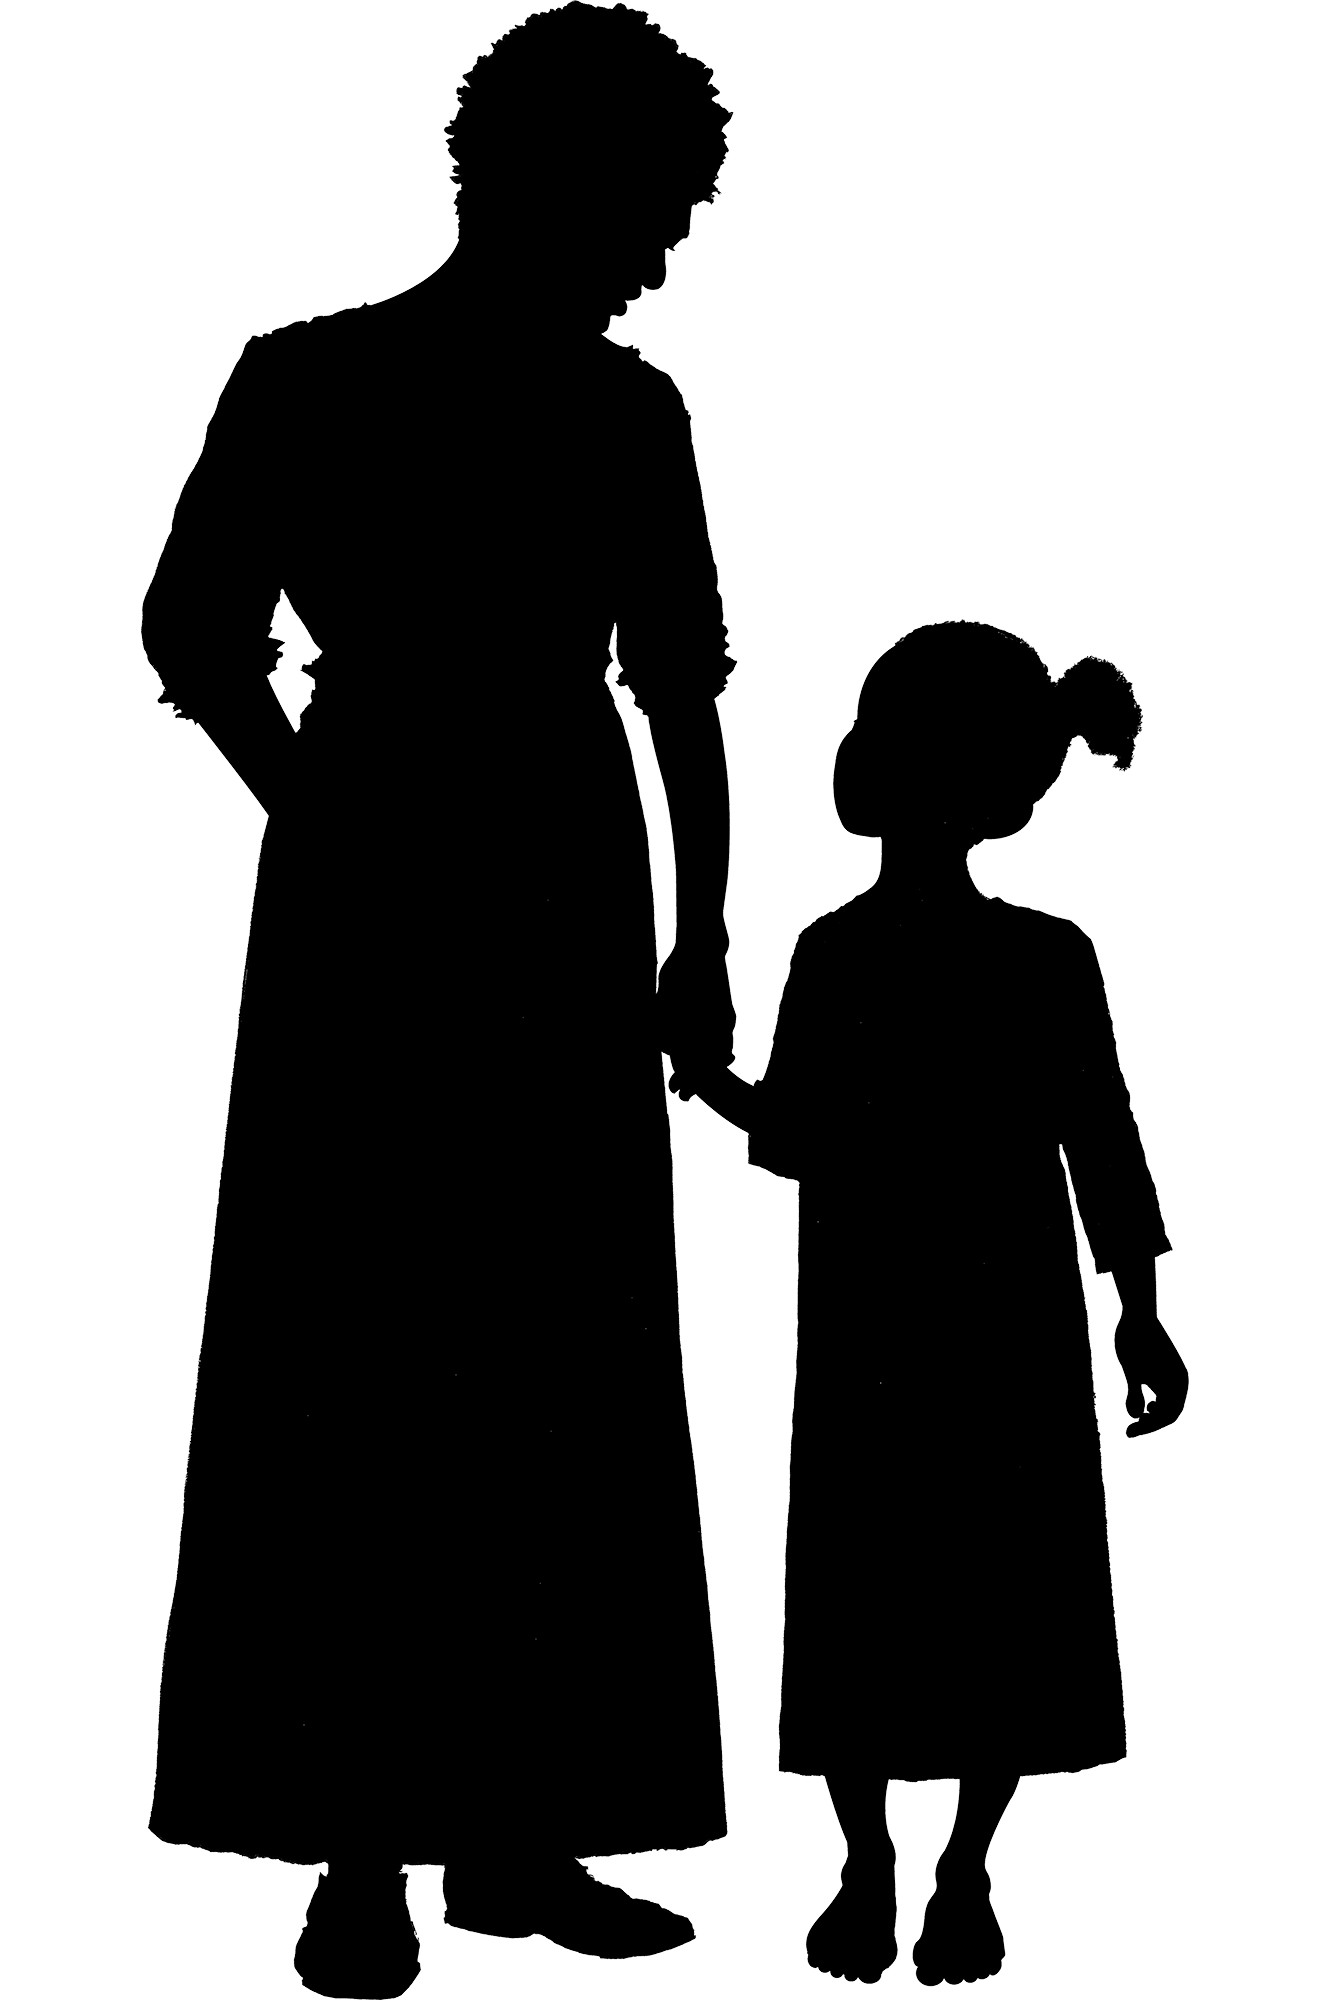 slave silhouette enslaved people at mount vernon george washington39s silhouette slave 1 3